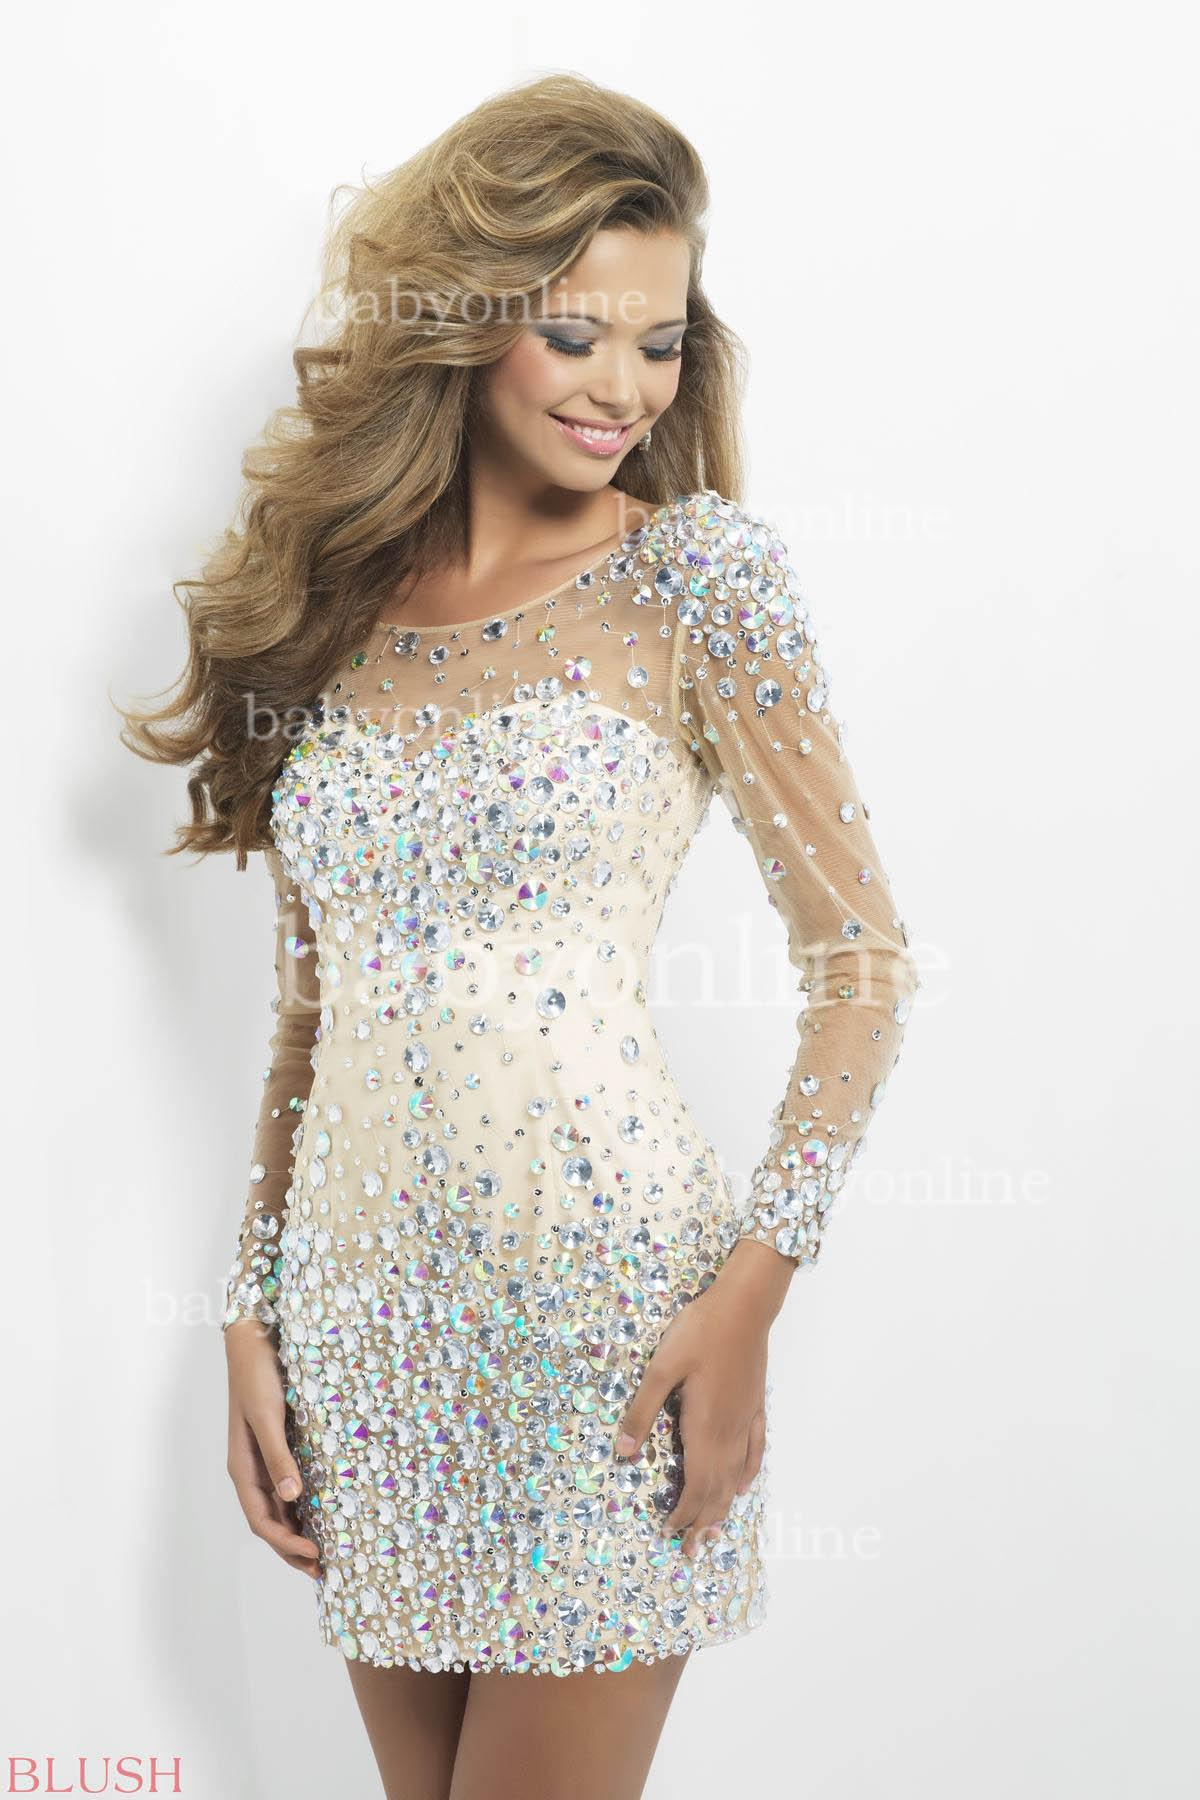 Images of Hot Homecoming Dresses - Reikian